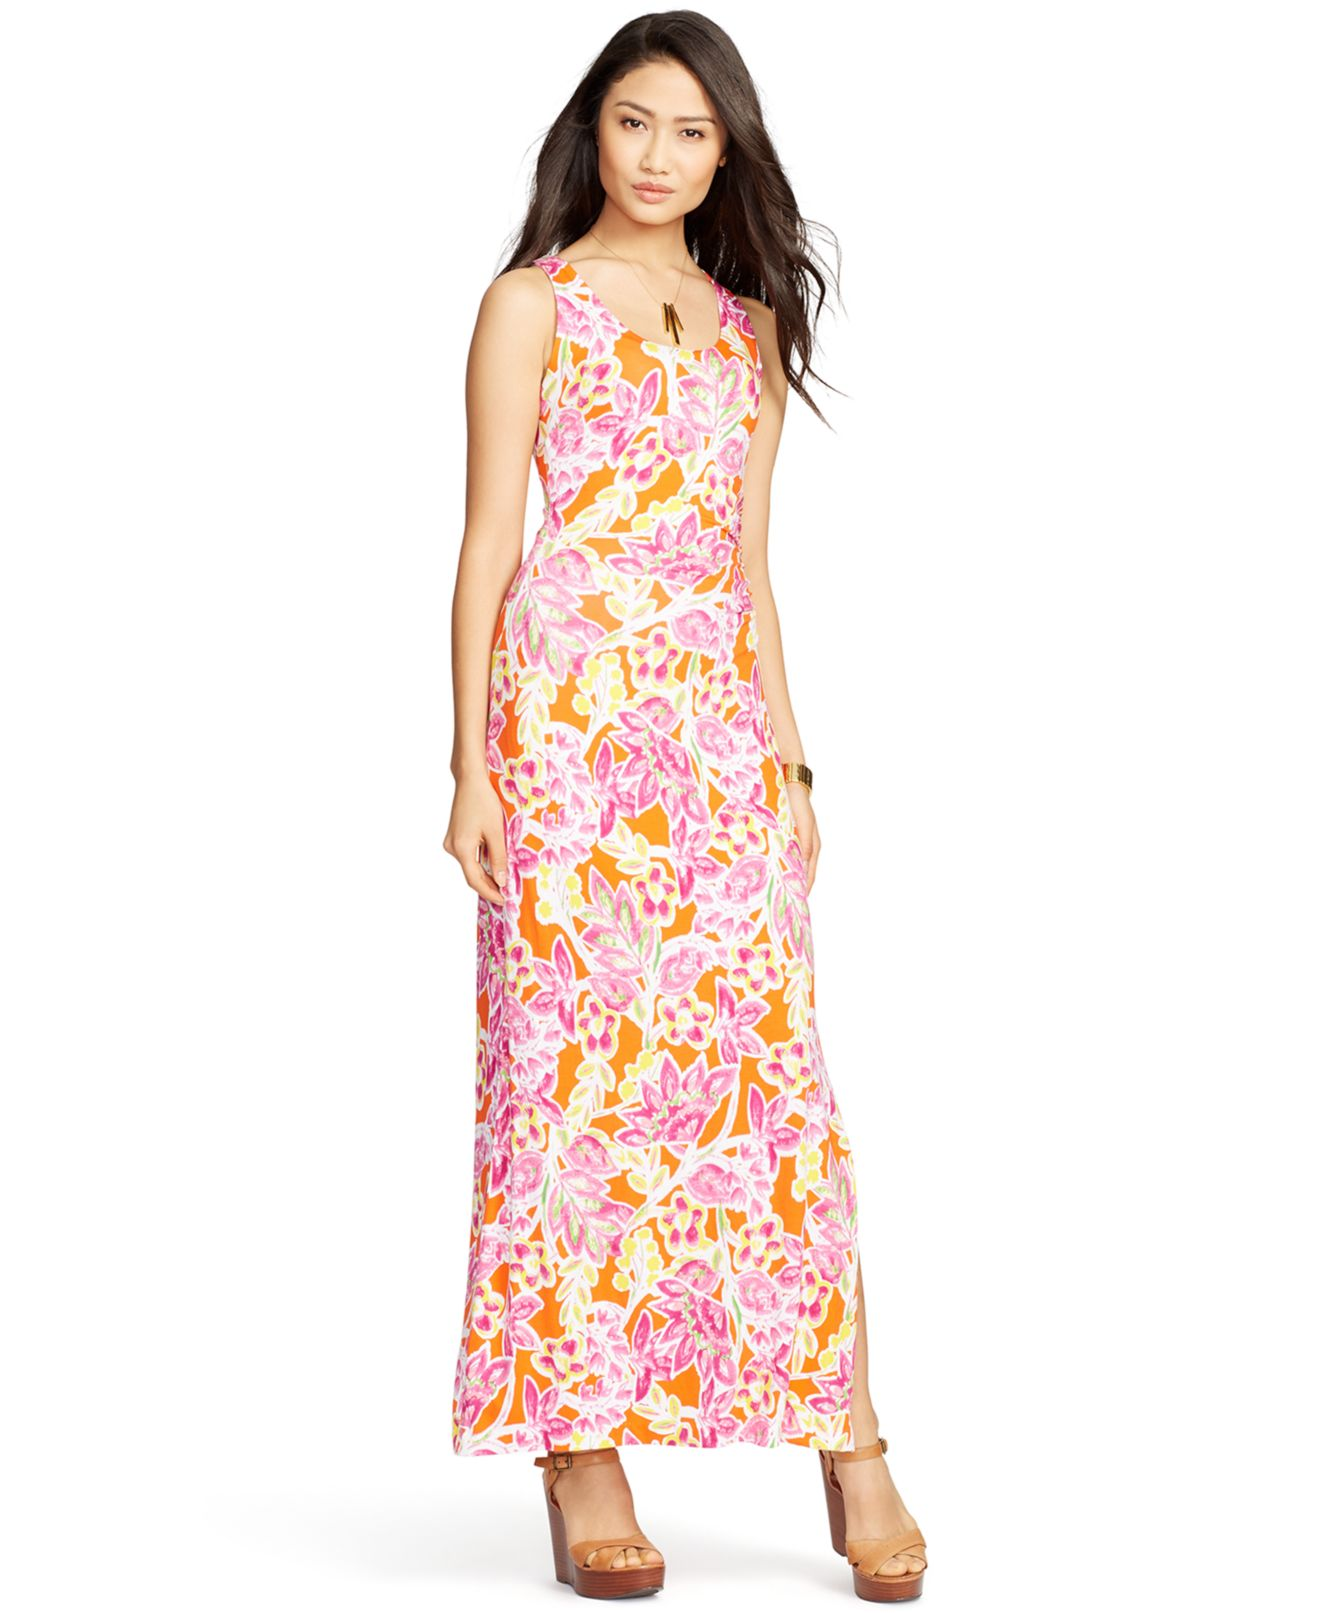 Advice on Maxi Dresses For Plus Size Women Long dresses are the perfect match for your frame as it minimizes large hips and legs. Here are a few tips on how to choose a maxi dress for your plus-size .